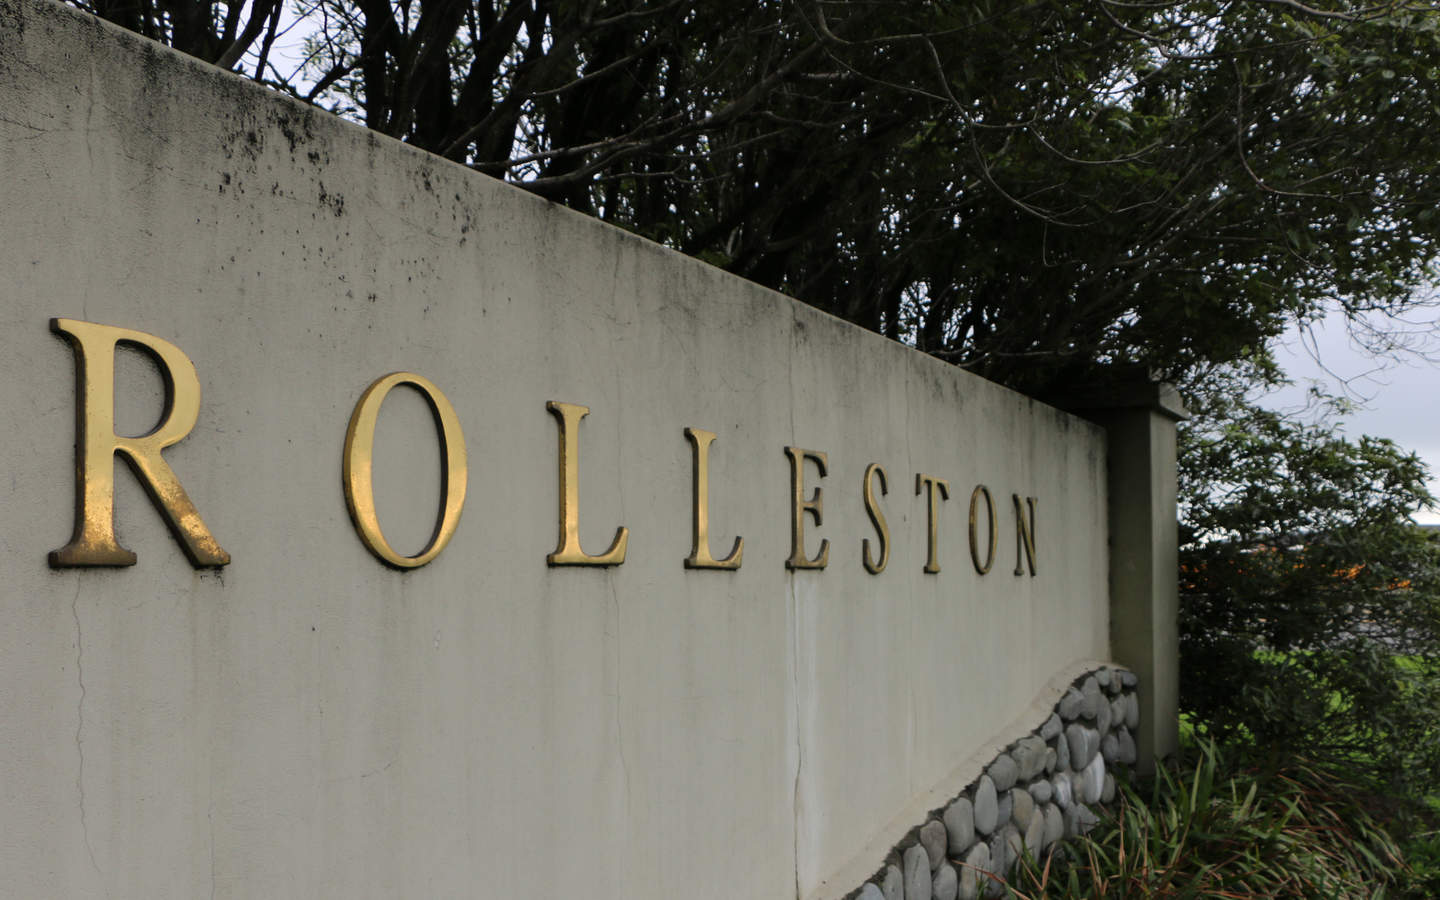 Rolleston, town of the future